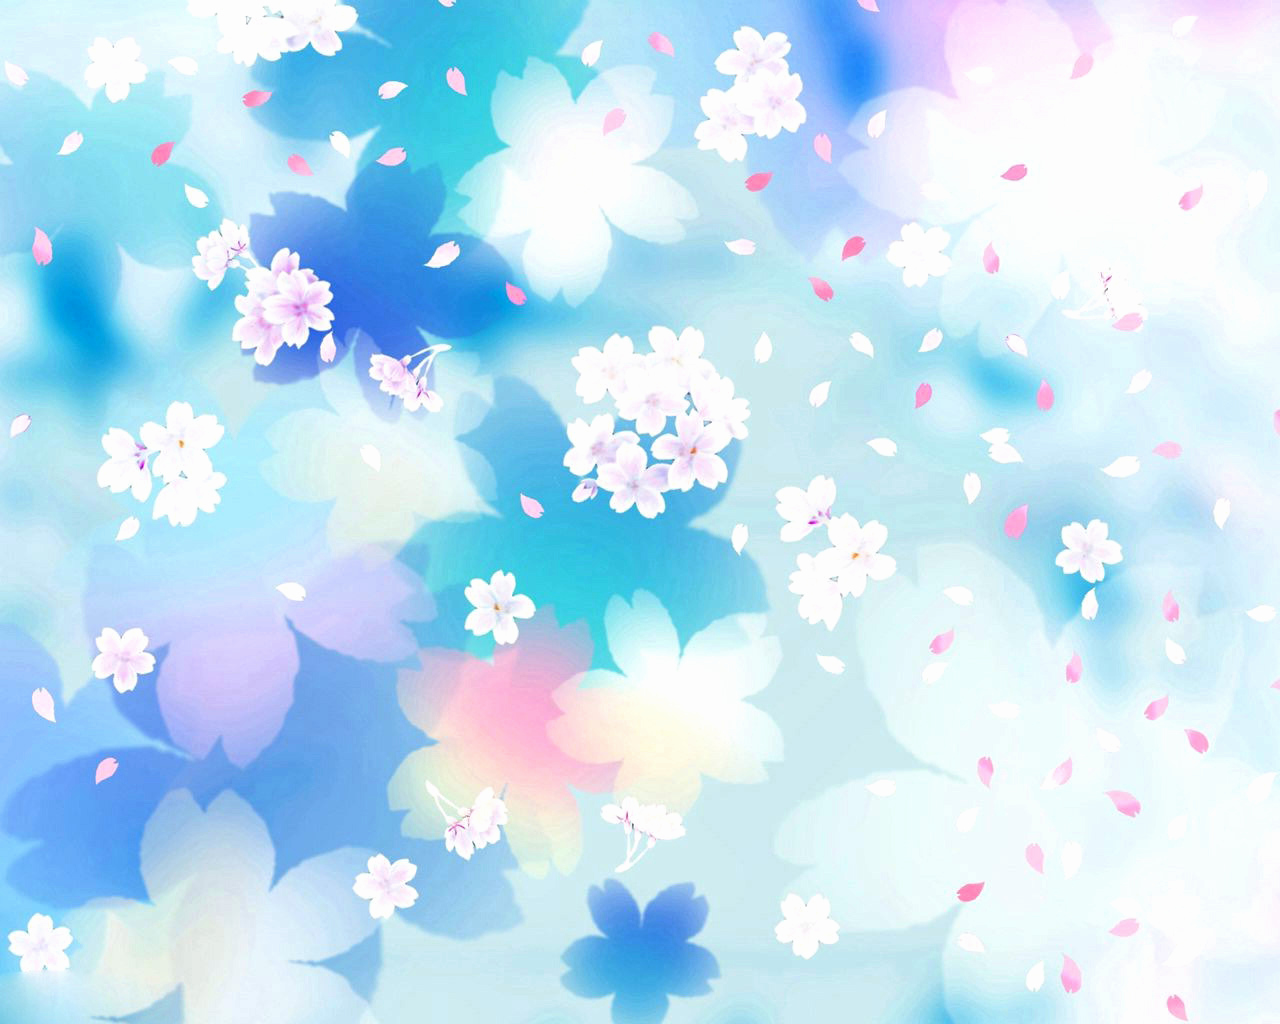 Powerpoint Backgrounds Of Free Flower Powerpoint Template Wallpapers 1280 X 1024